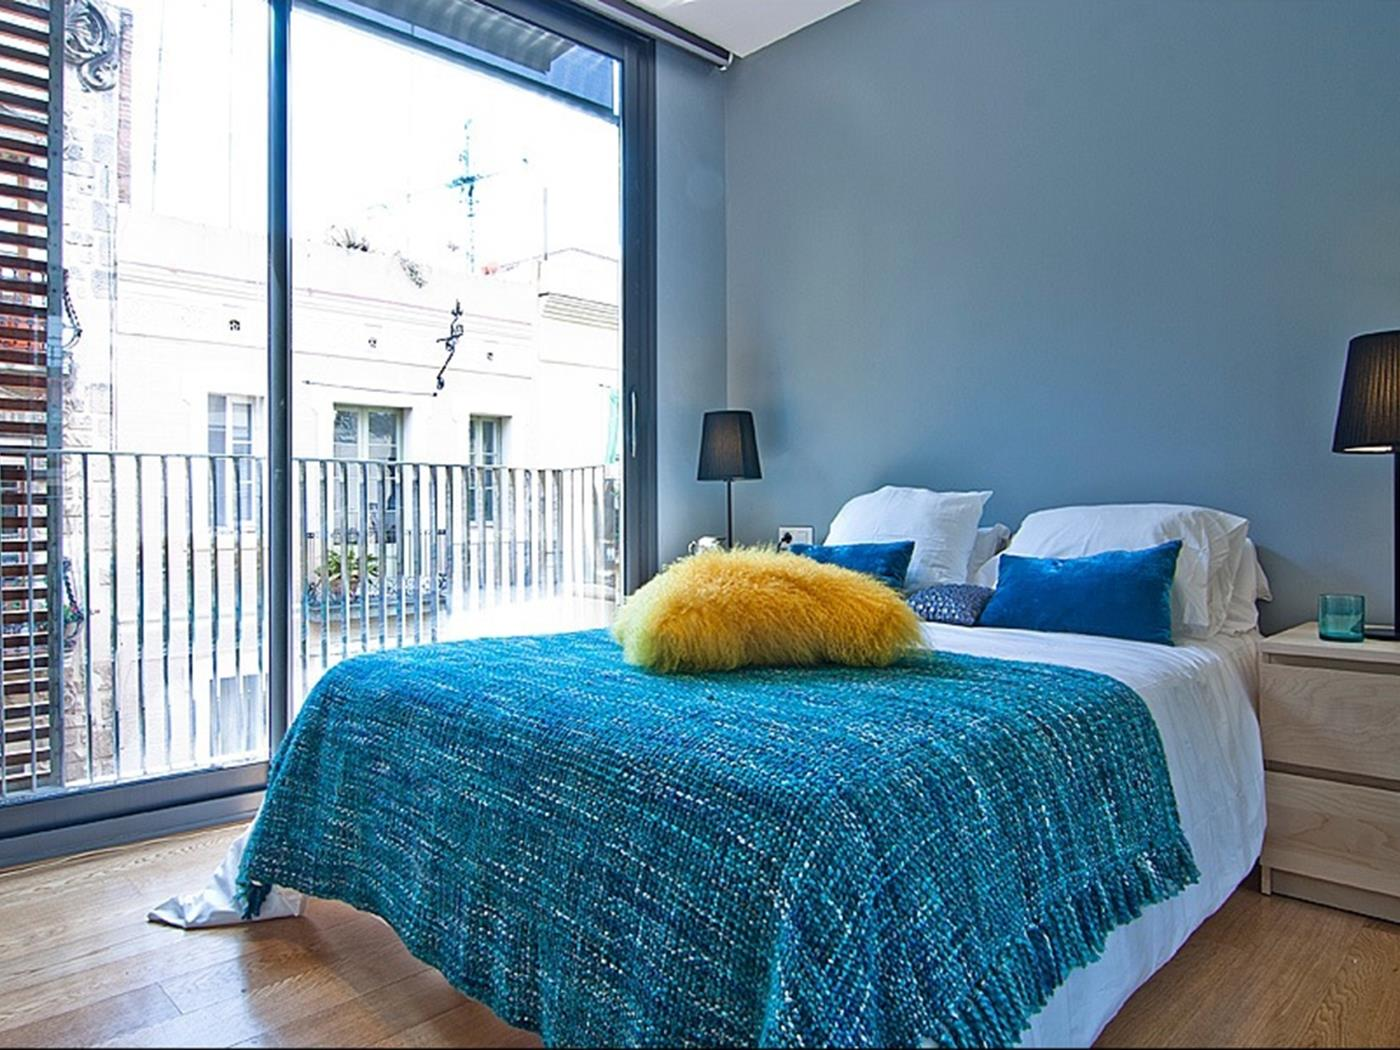 Apartment with Terrace and Pool in Sagrada Familia - My Space Barcelona Mieszkanie